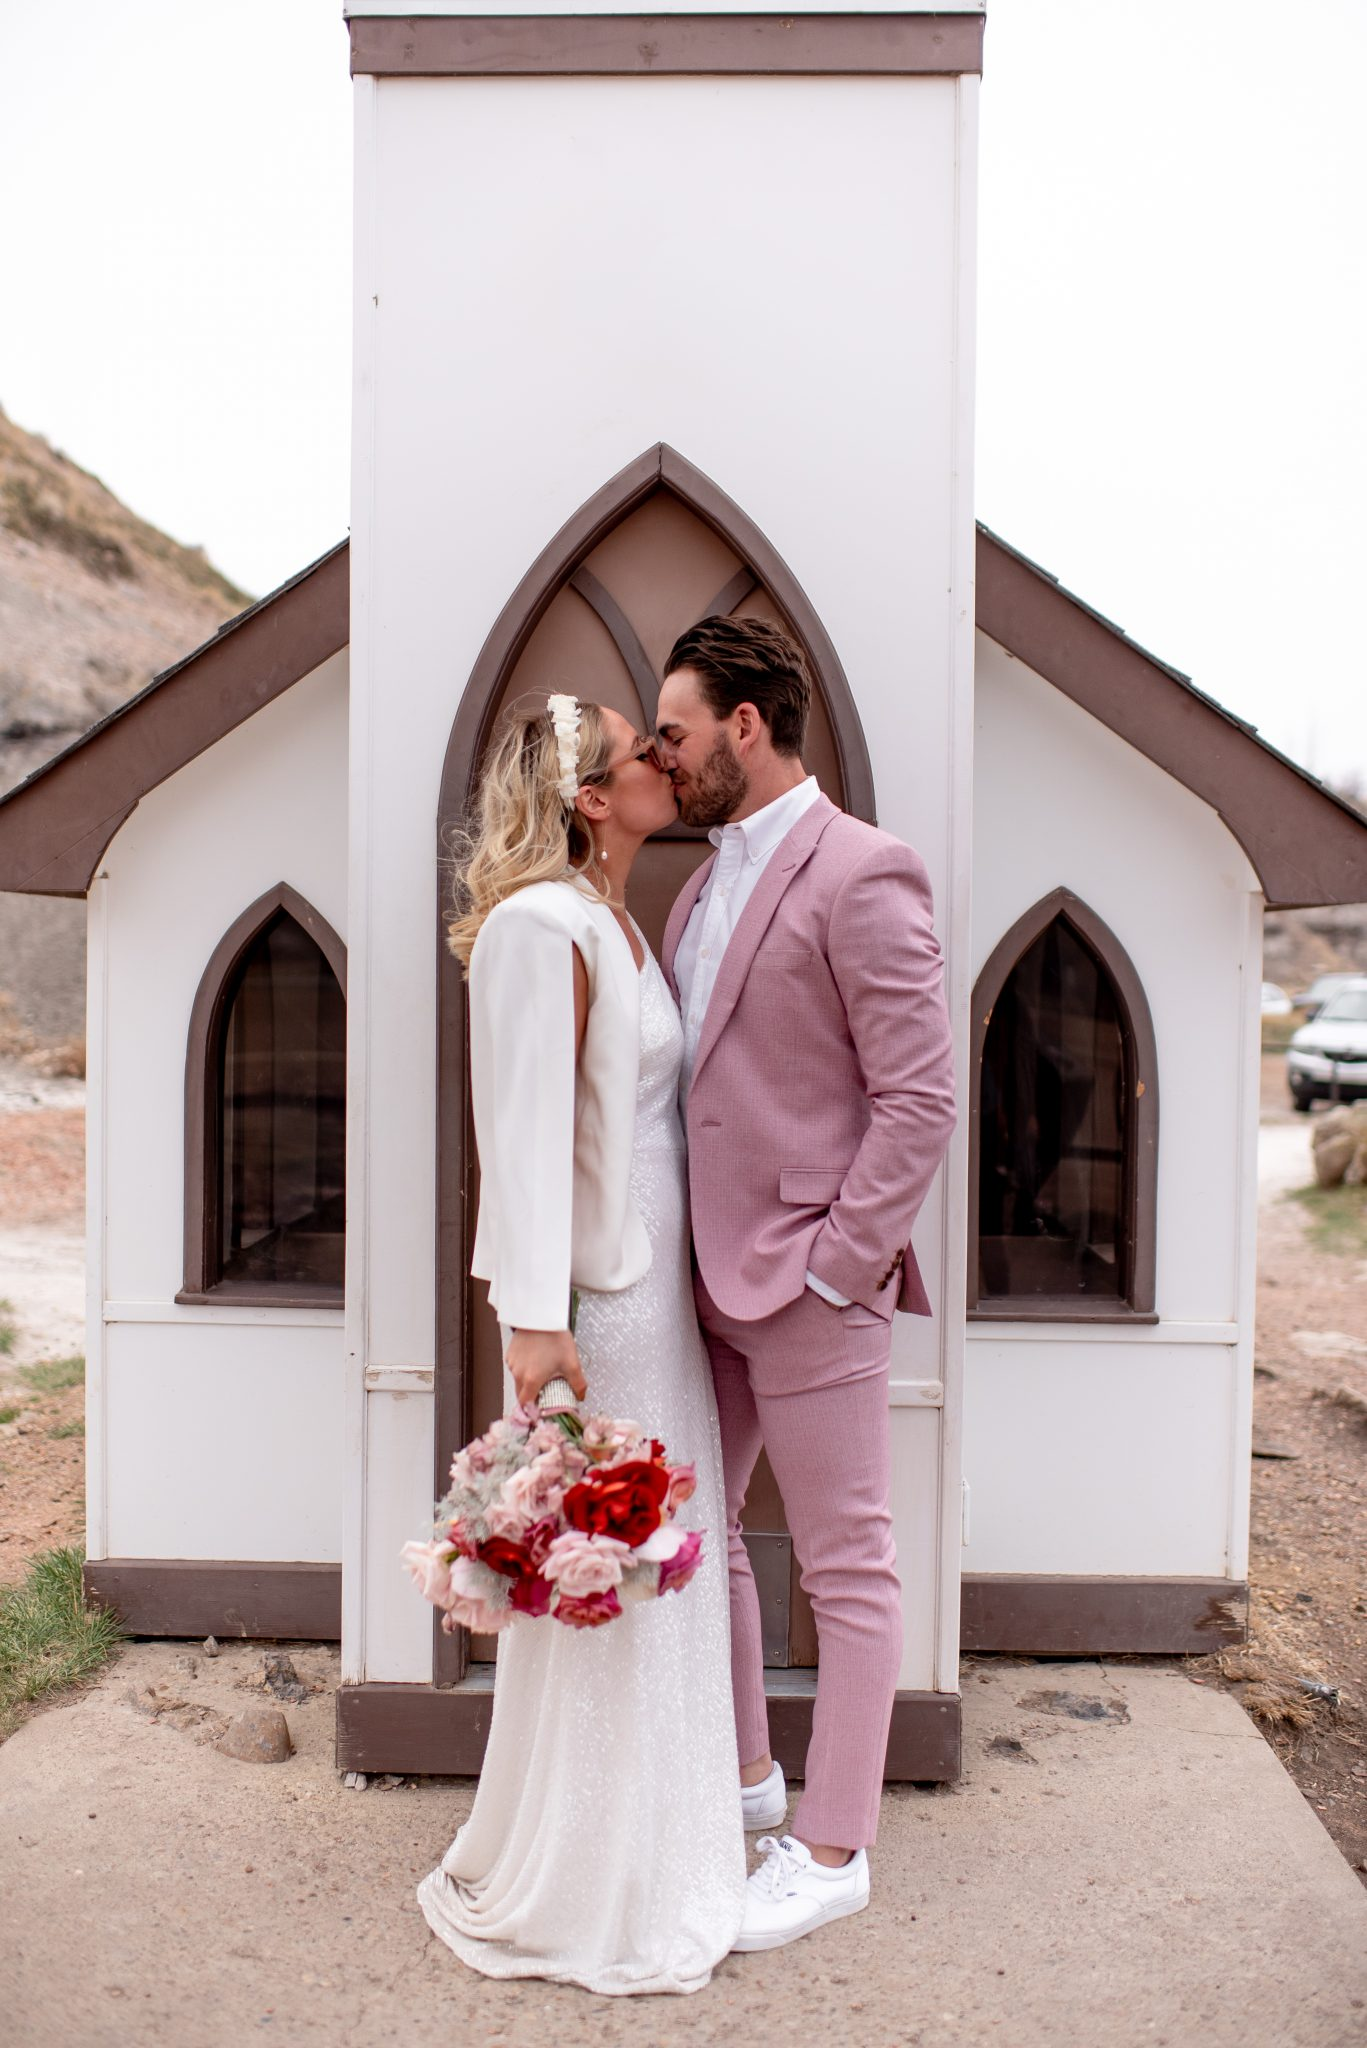 Boho wedding attire inspiration with a groom in a pink suit and bride wearing a crepe cape for a Drumheller Elopement